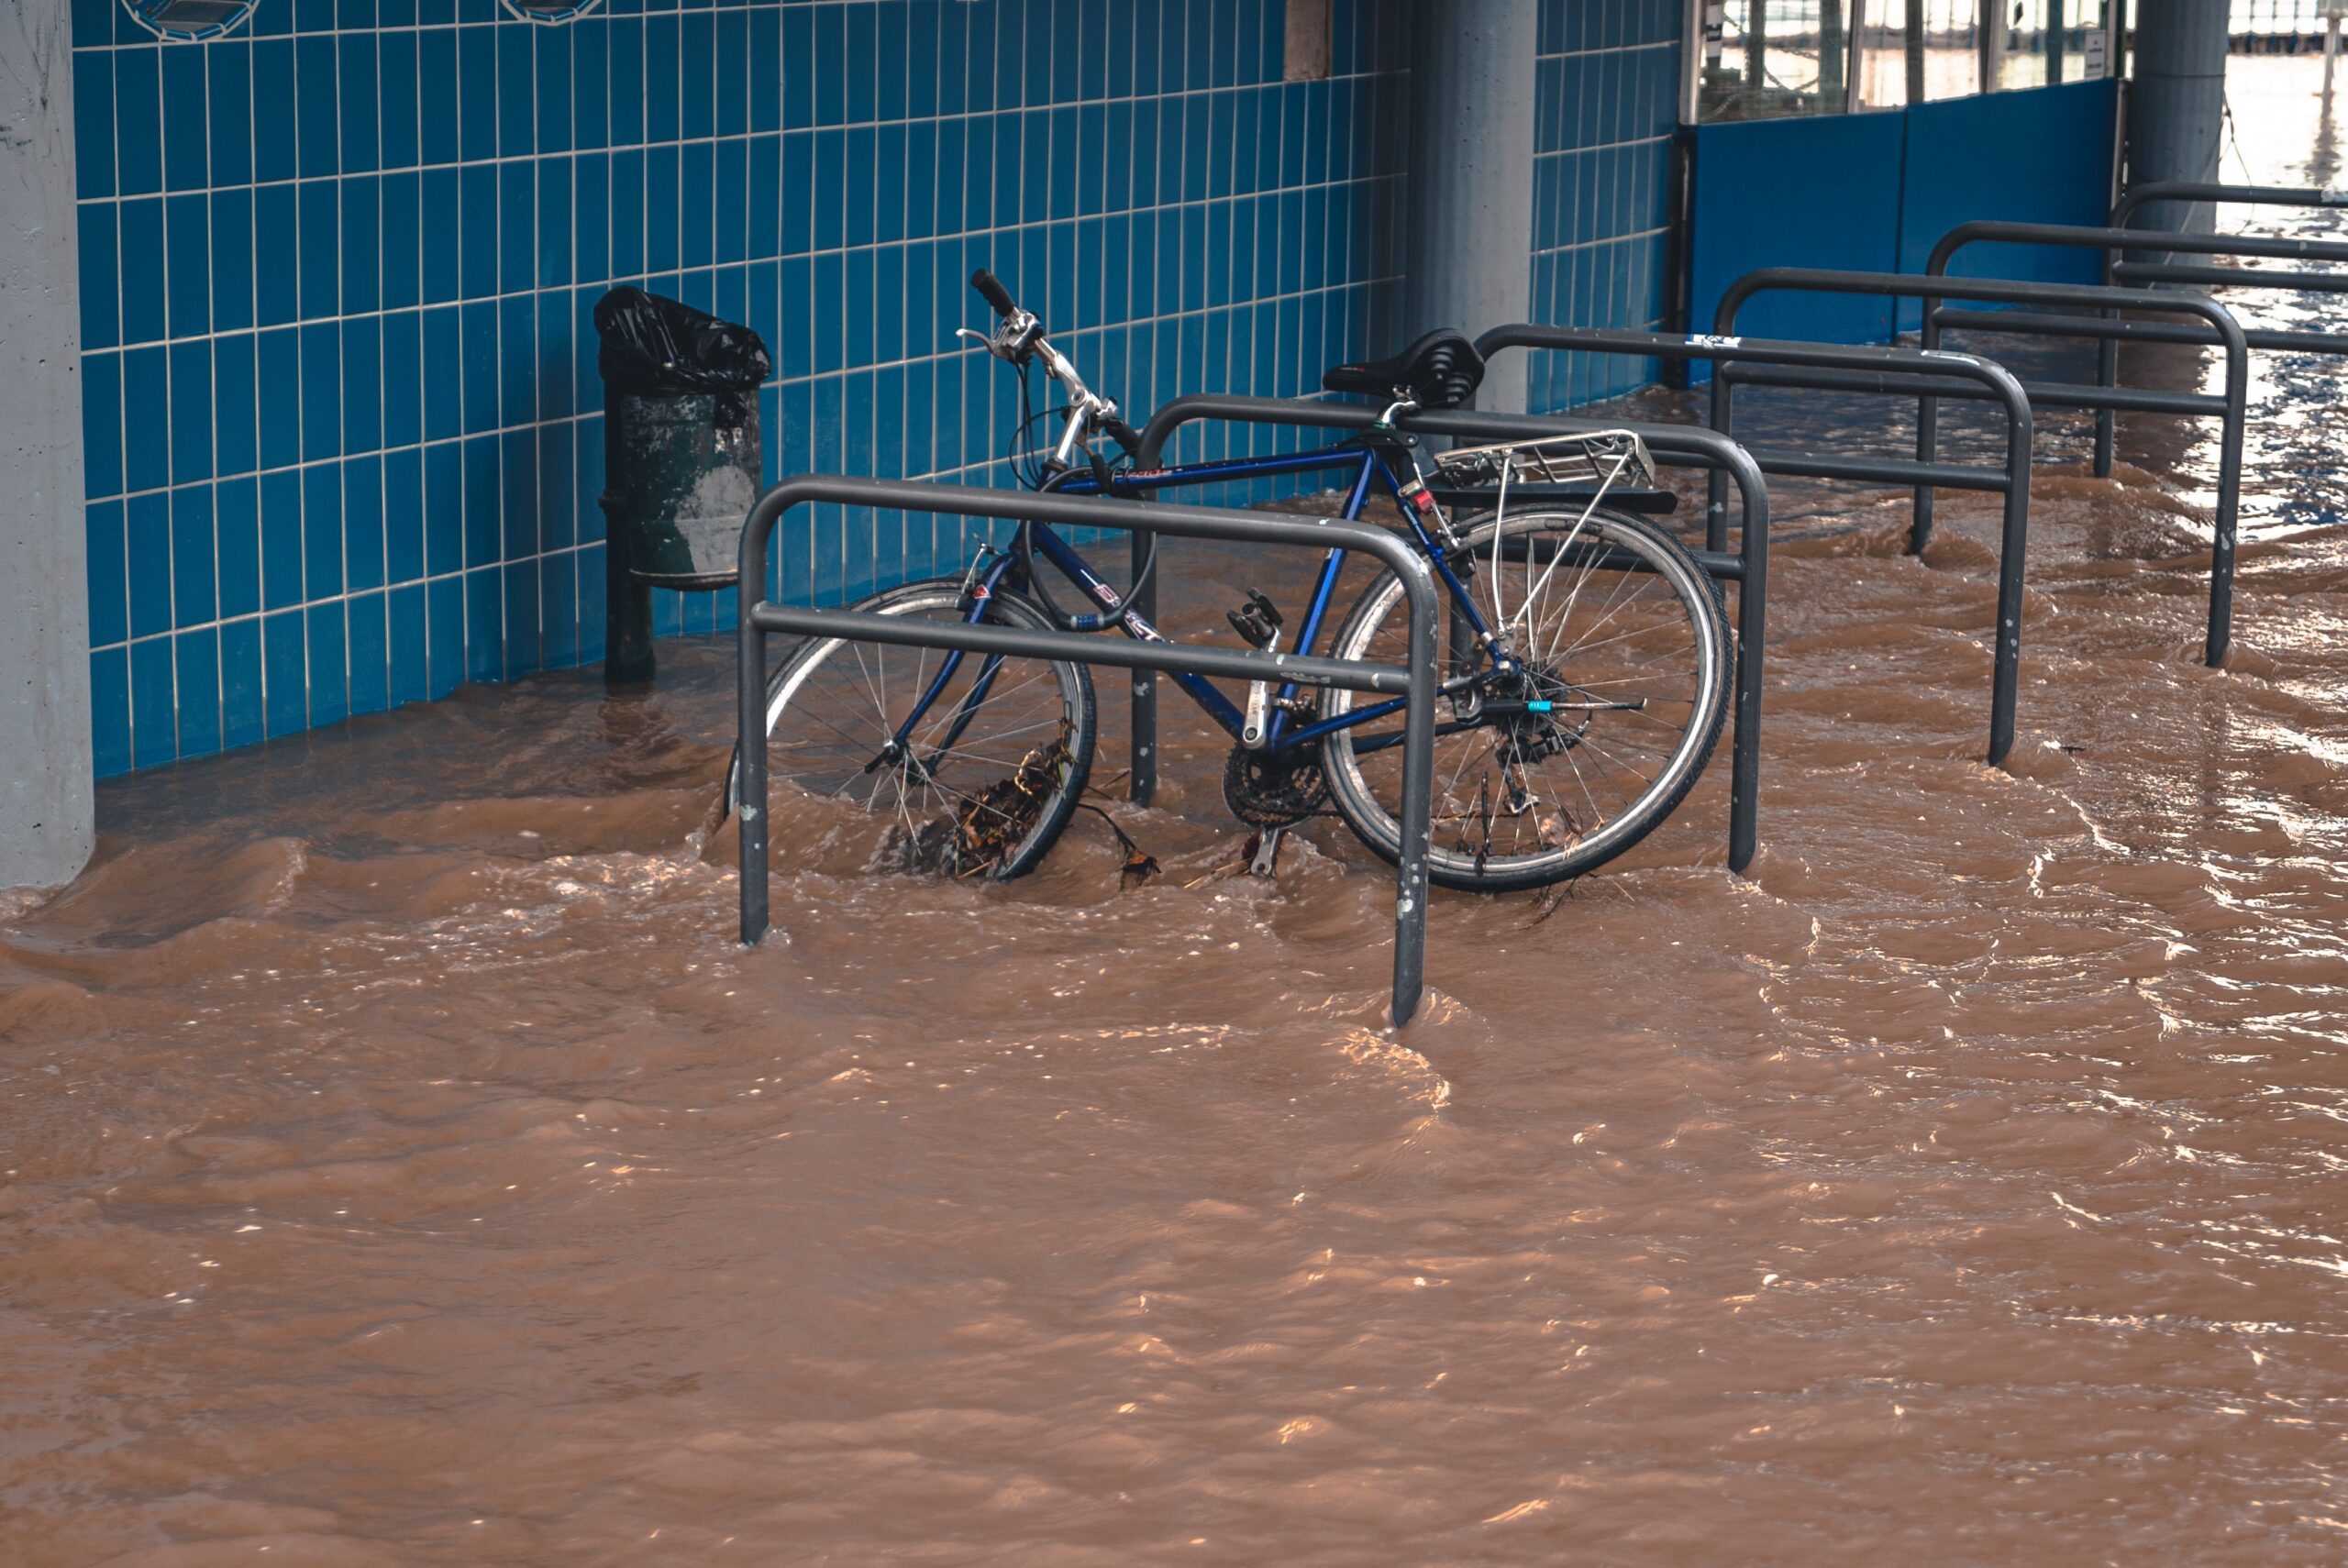 water damage in street with partially submerged bicycle